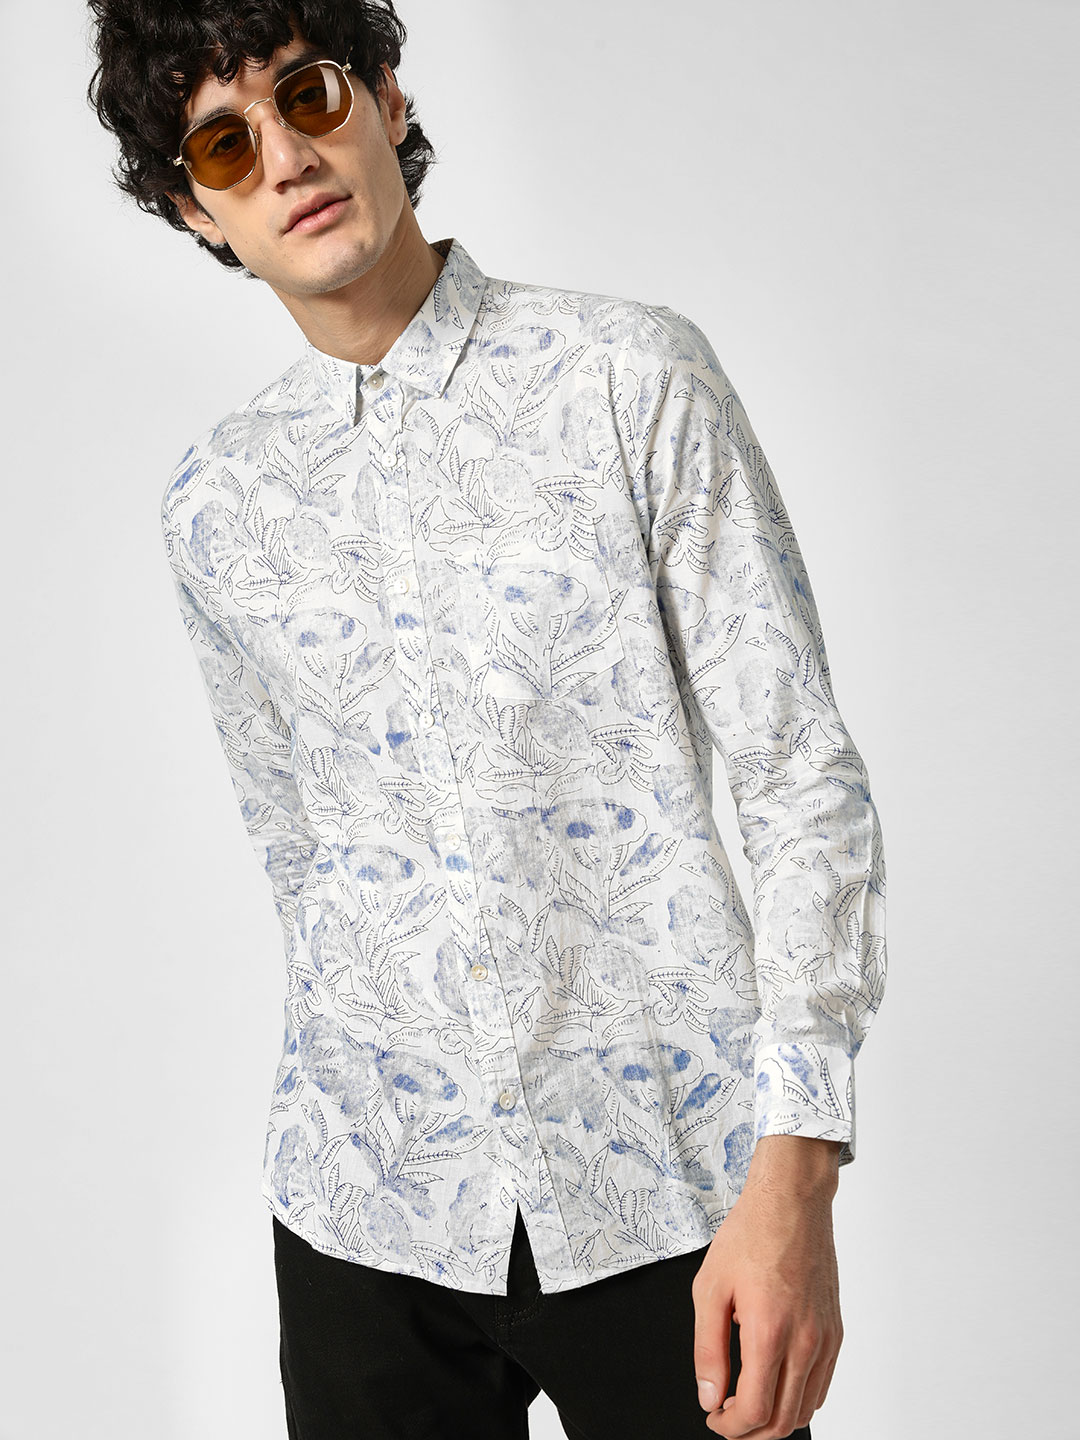 Cult Fiction White Floral Block Print Shirt 1